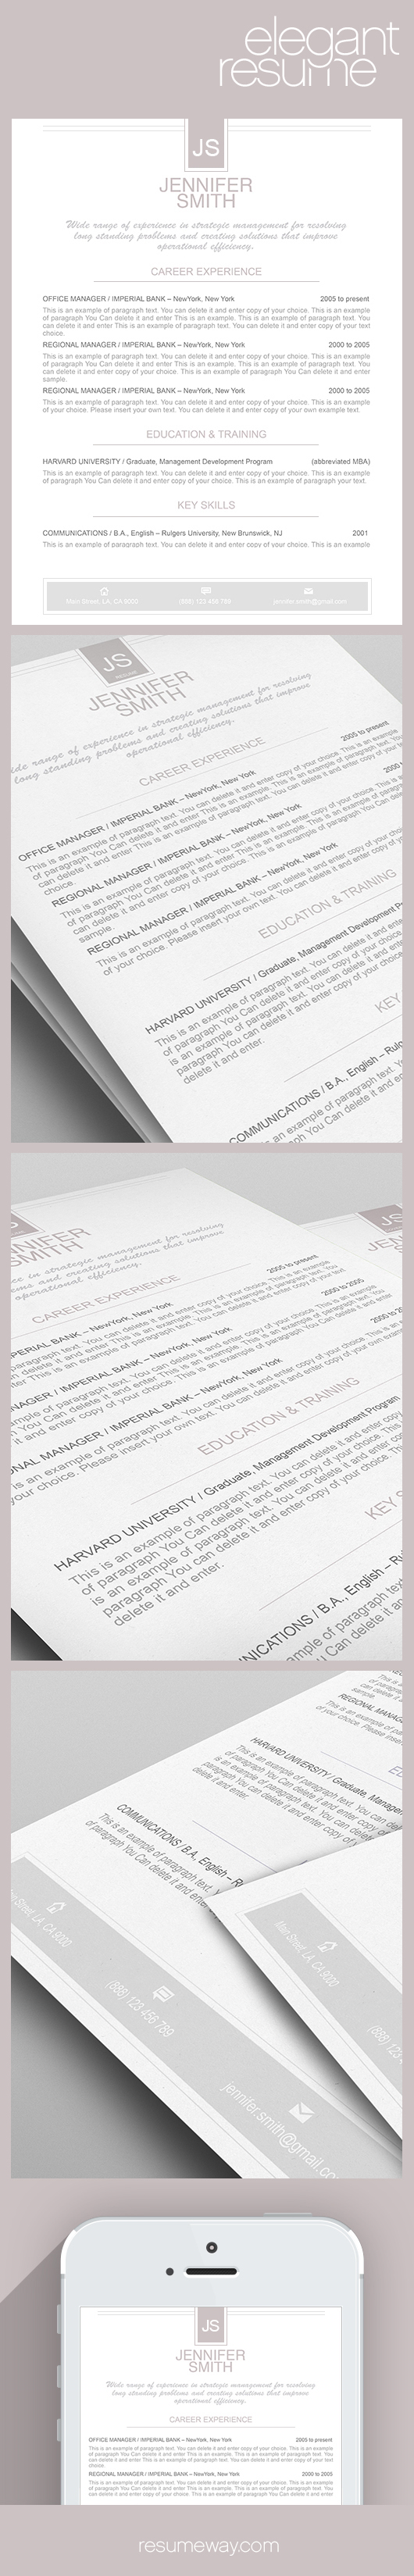 Apple Resume Template Elegant Resume Template 110440  Premium Line Of Resume & Cover .